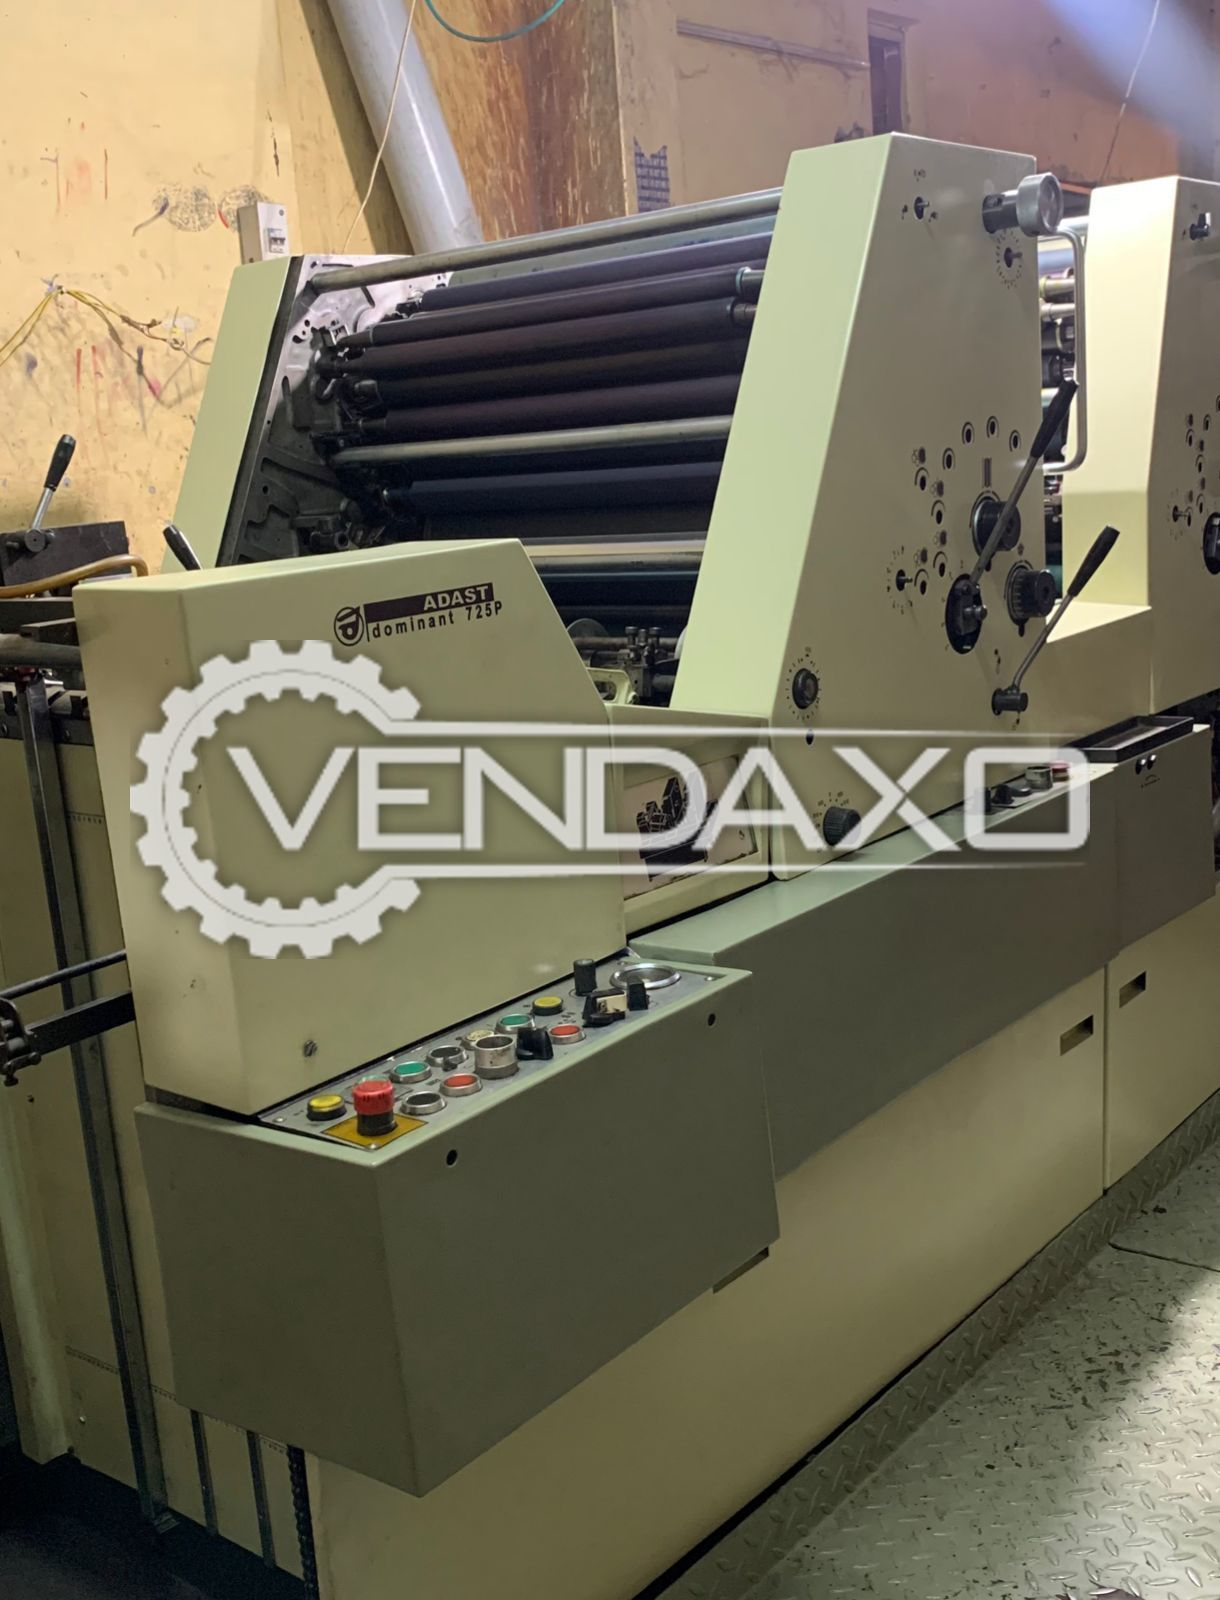 Adast Dominant 725P Offset Printing Machine - 19 X 26 Inch, 2 Color